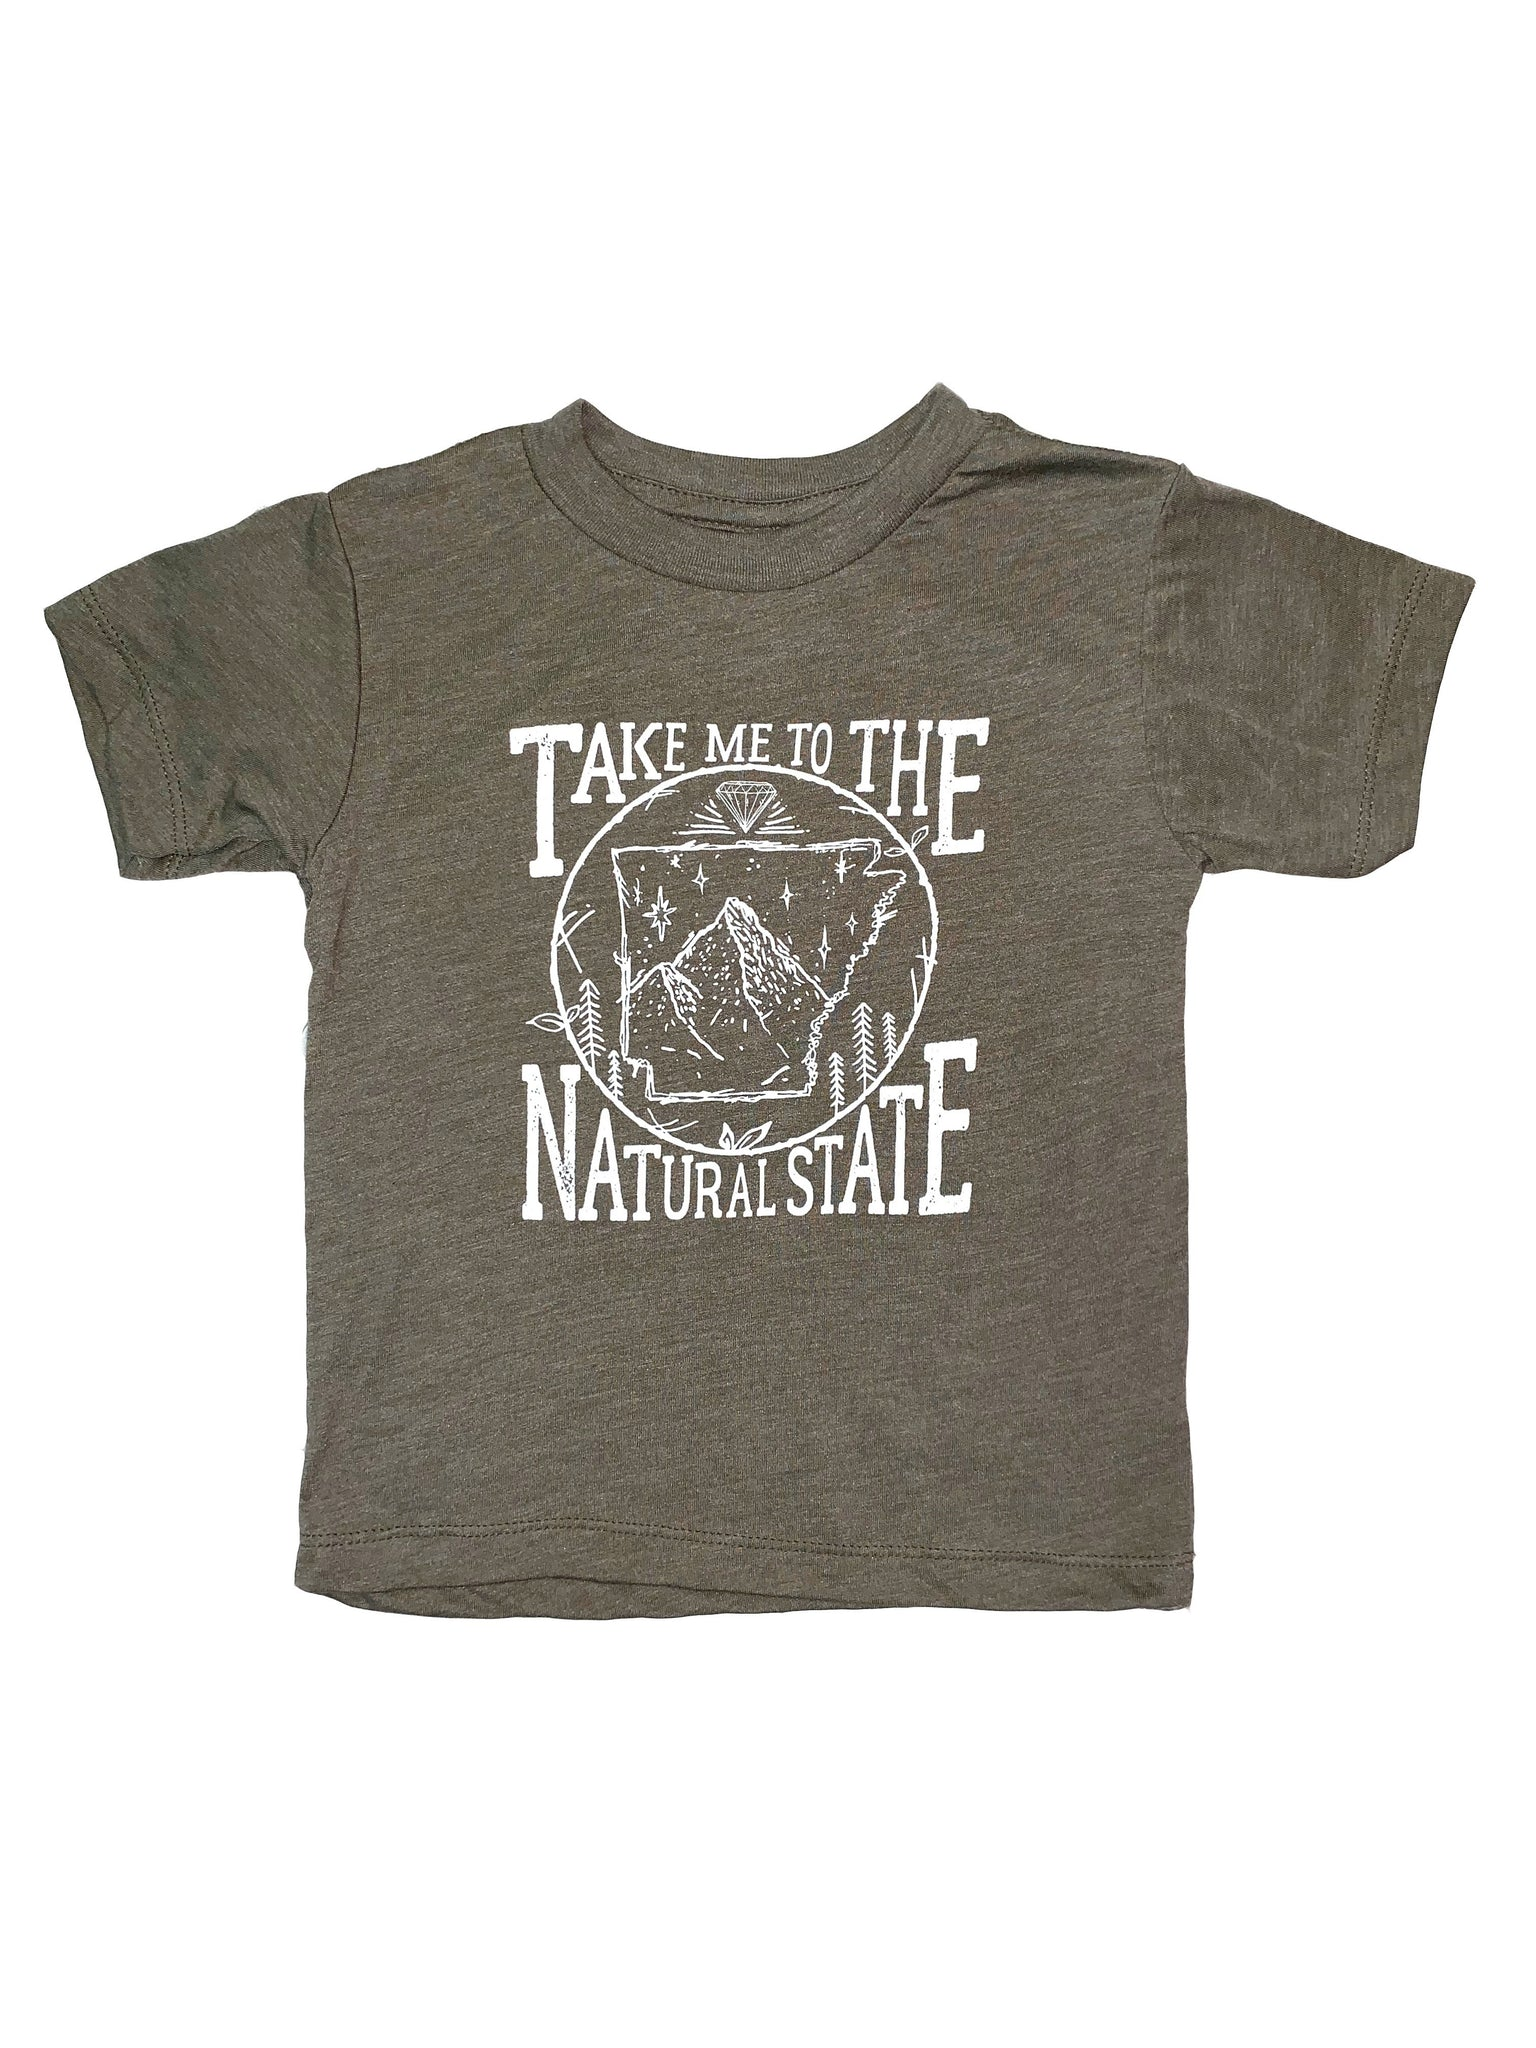 Take Me to the Natural State Toddler T-Shirt